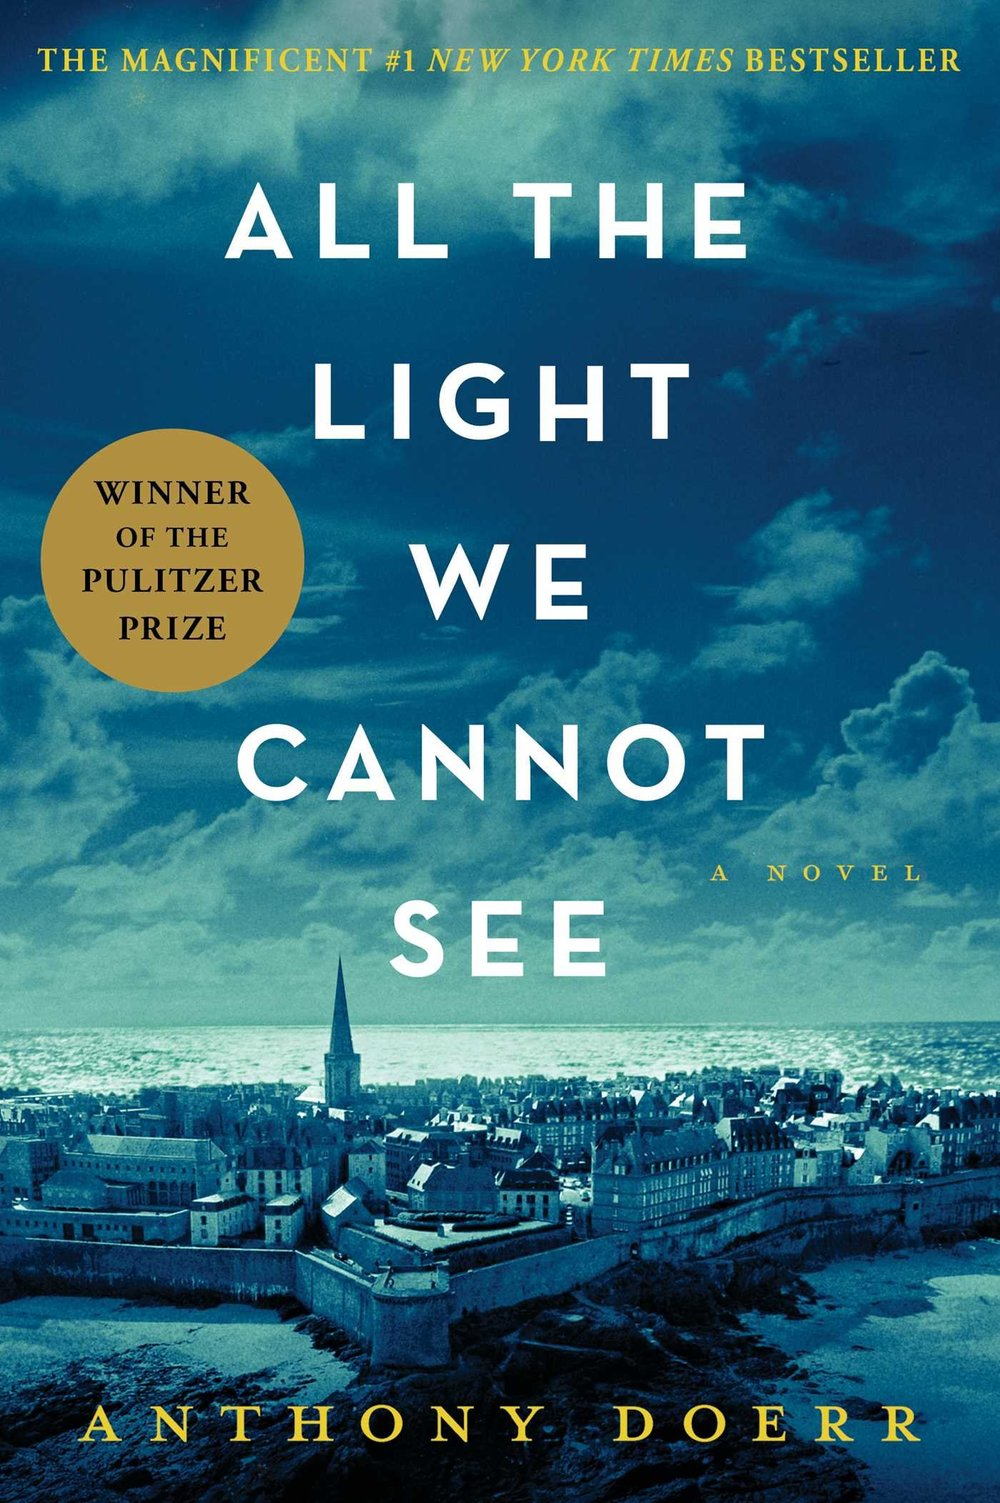 By Anthony Doerr